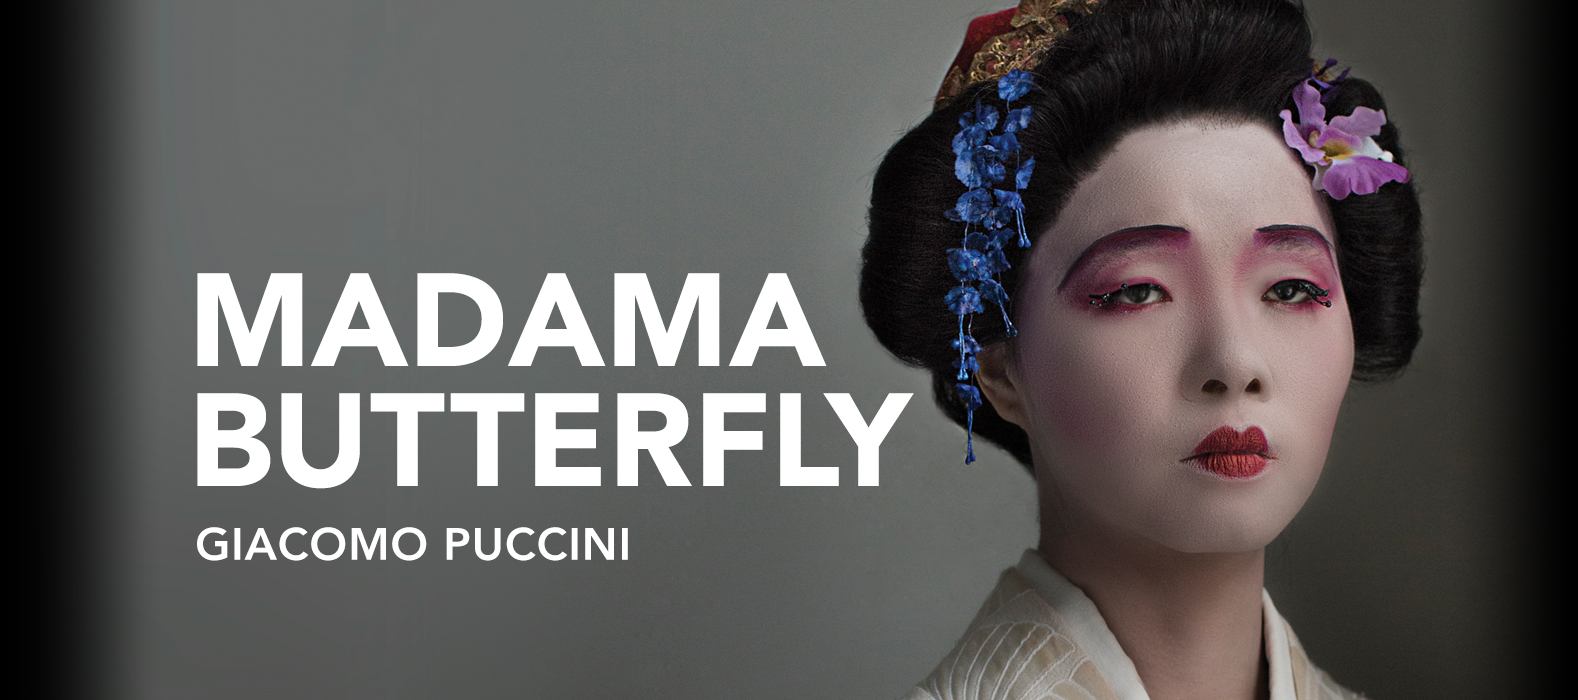 Madame Butterfly: Madama Butterfly